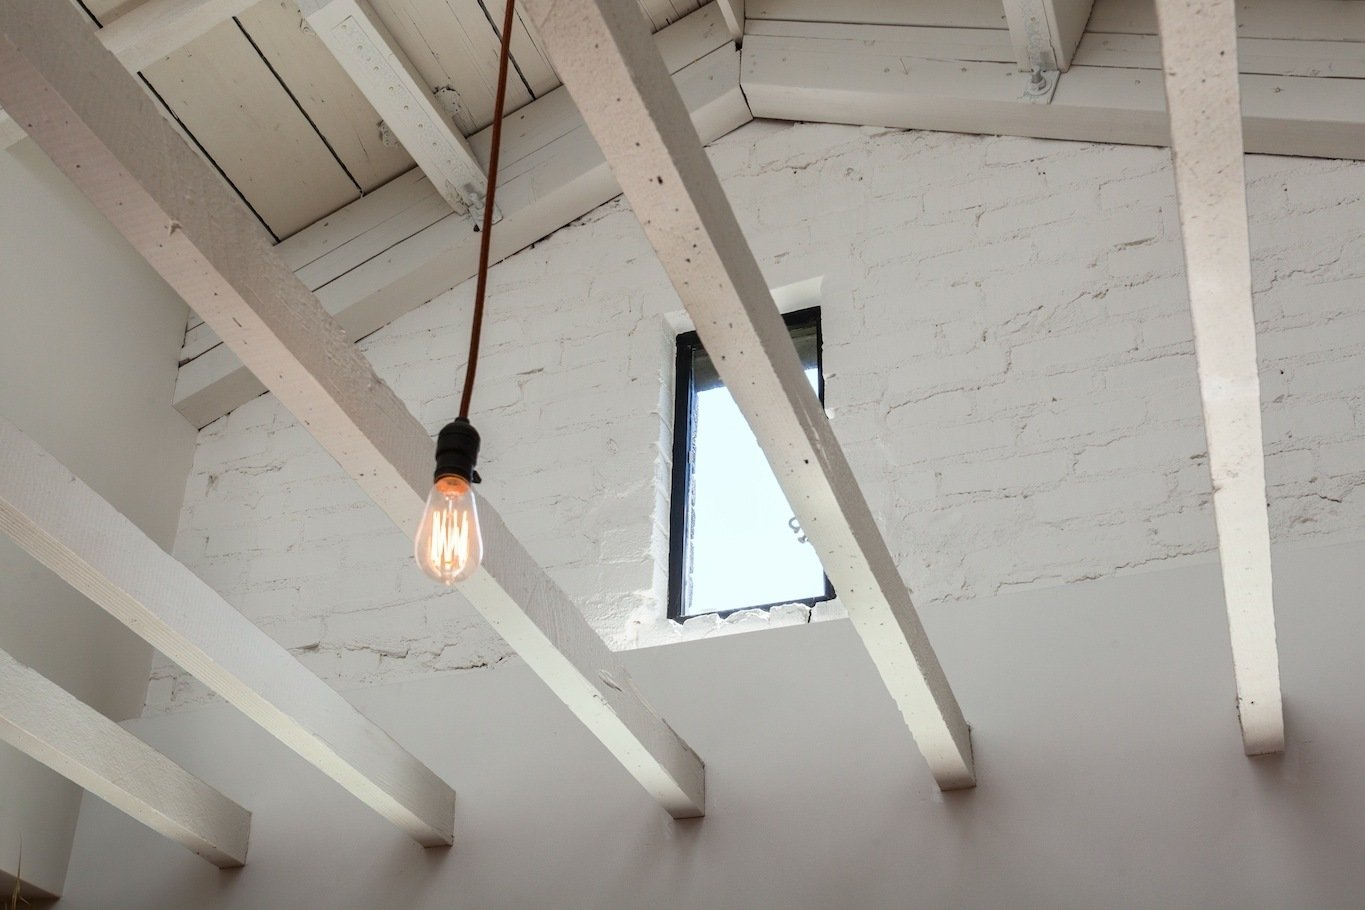 Detail of open ceiling framing, pendant light and window (former attic vent) within existing painted brick wall